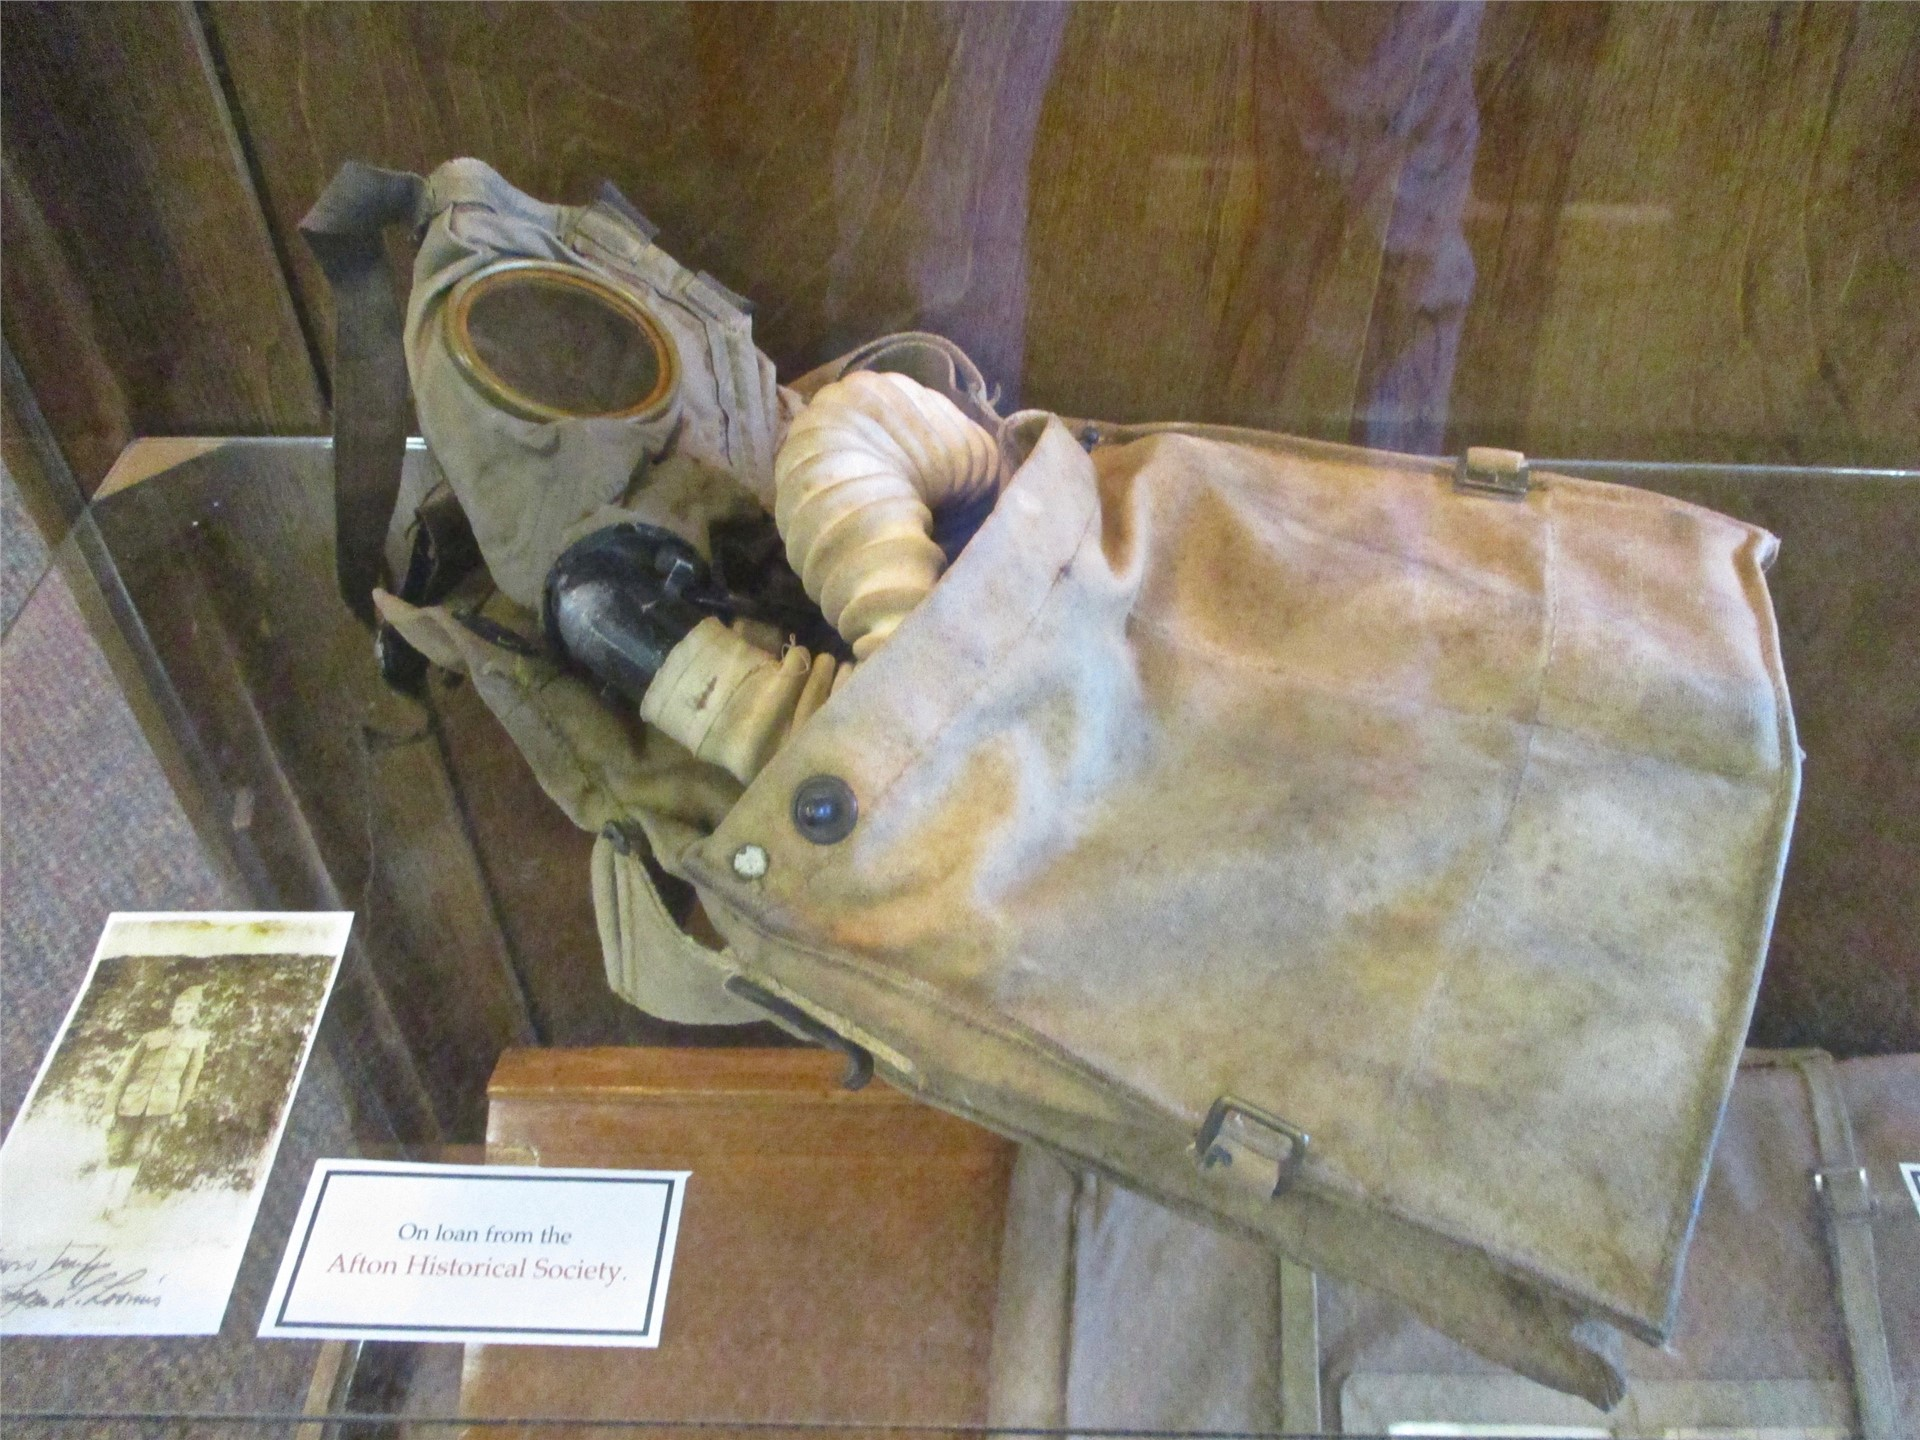 World War I exhibit: display case featuring gas mask.